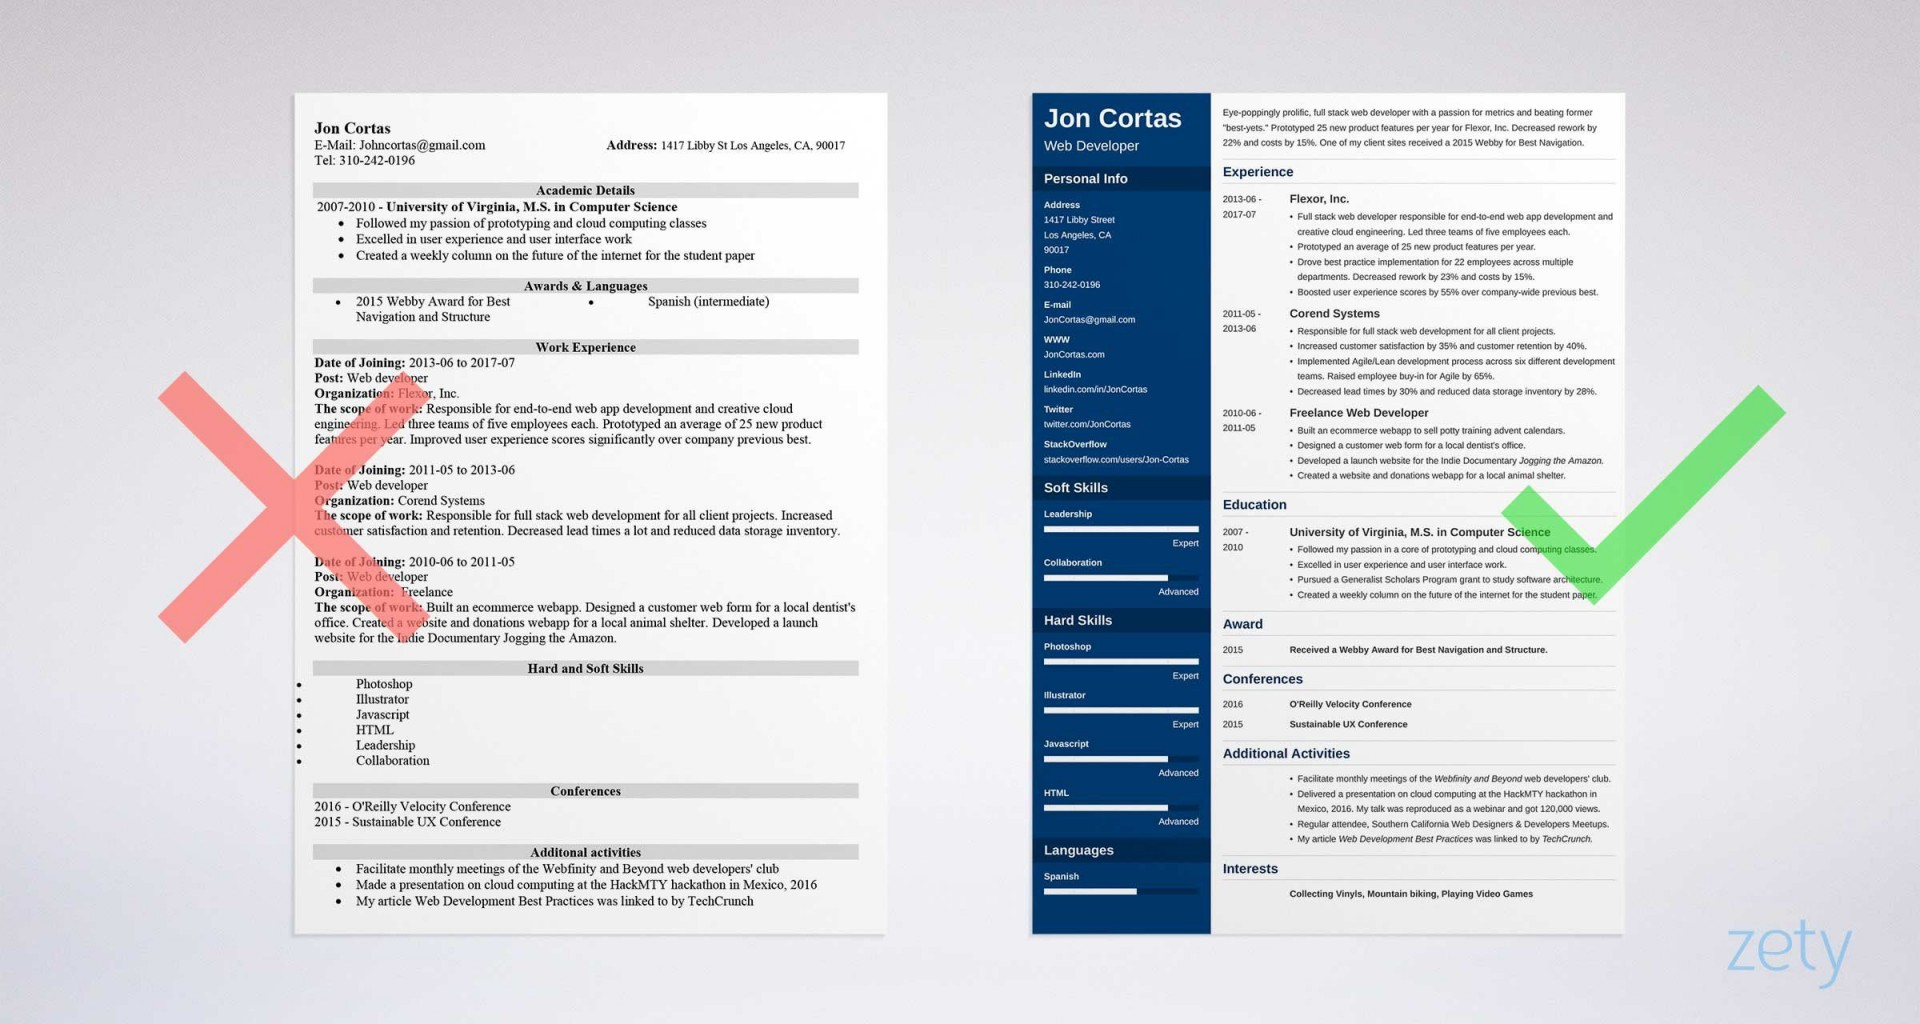 008 Impressive How To Make Resume Template In Word 2013 Photo 1920